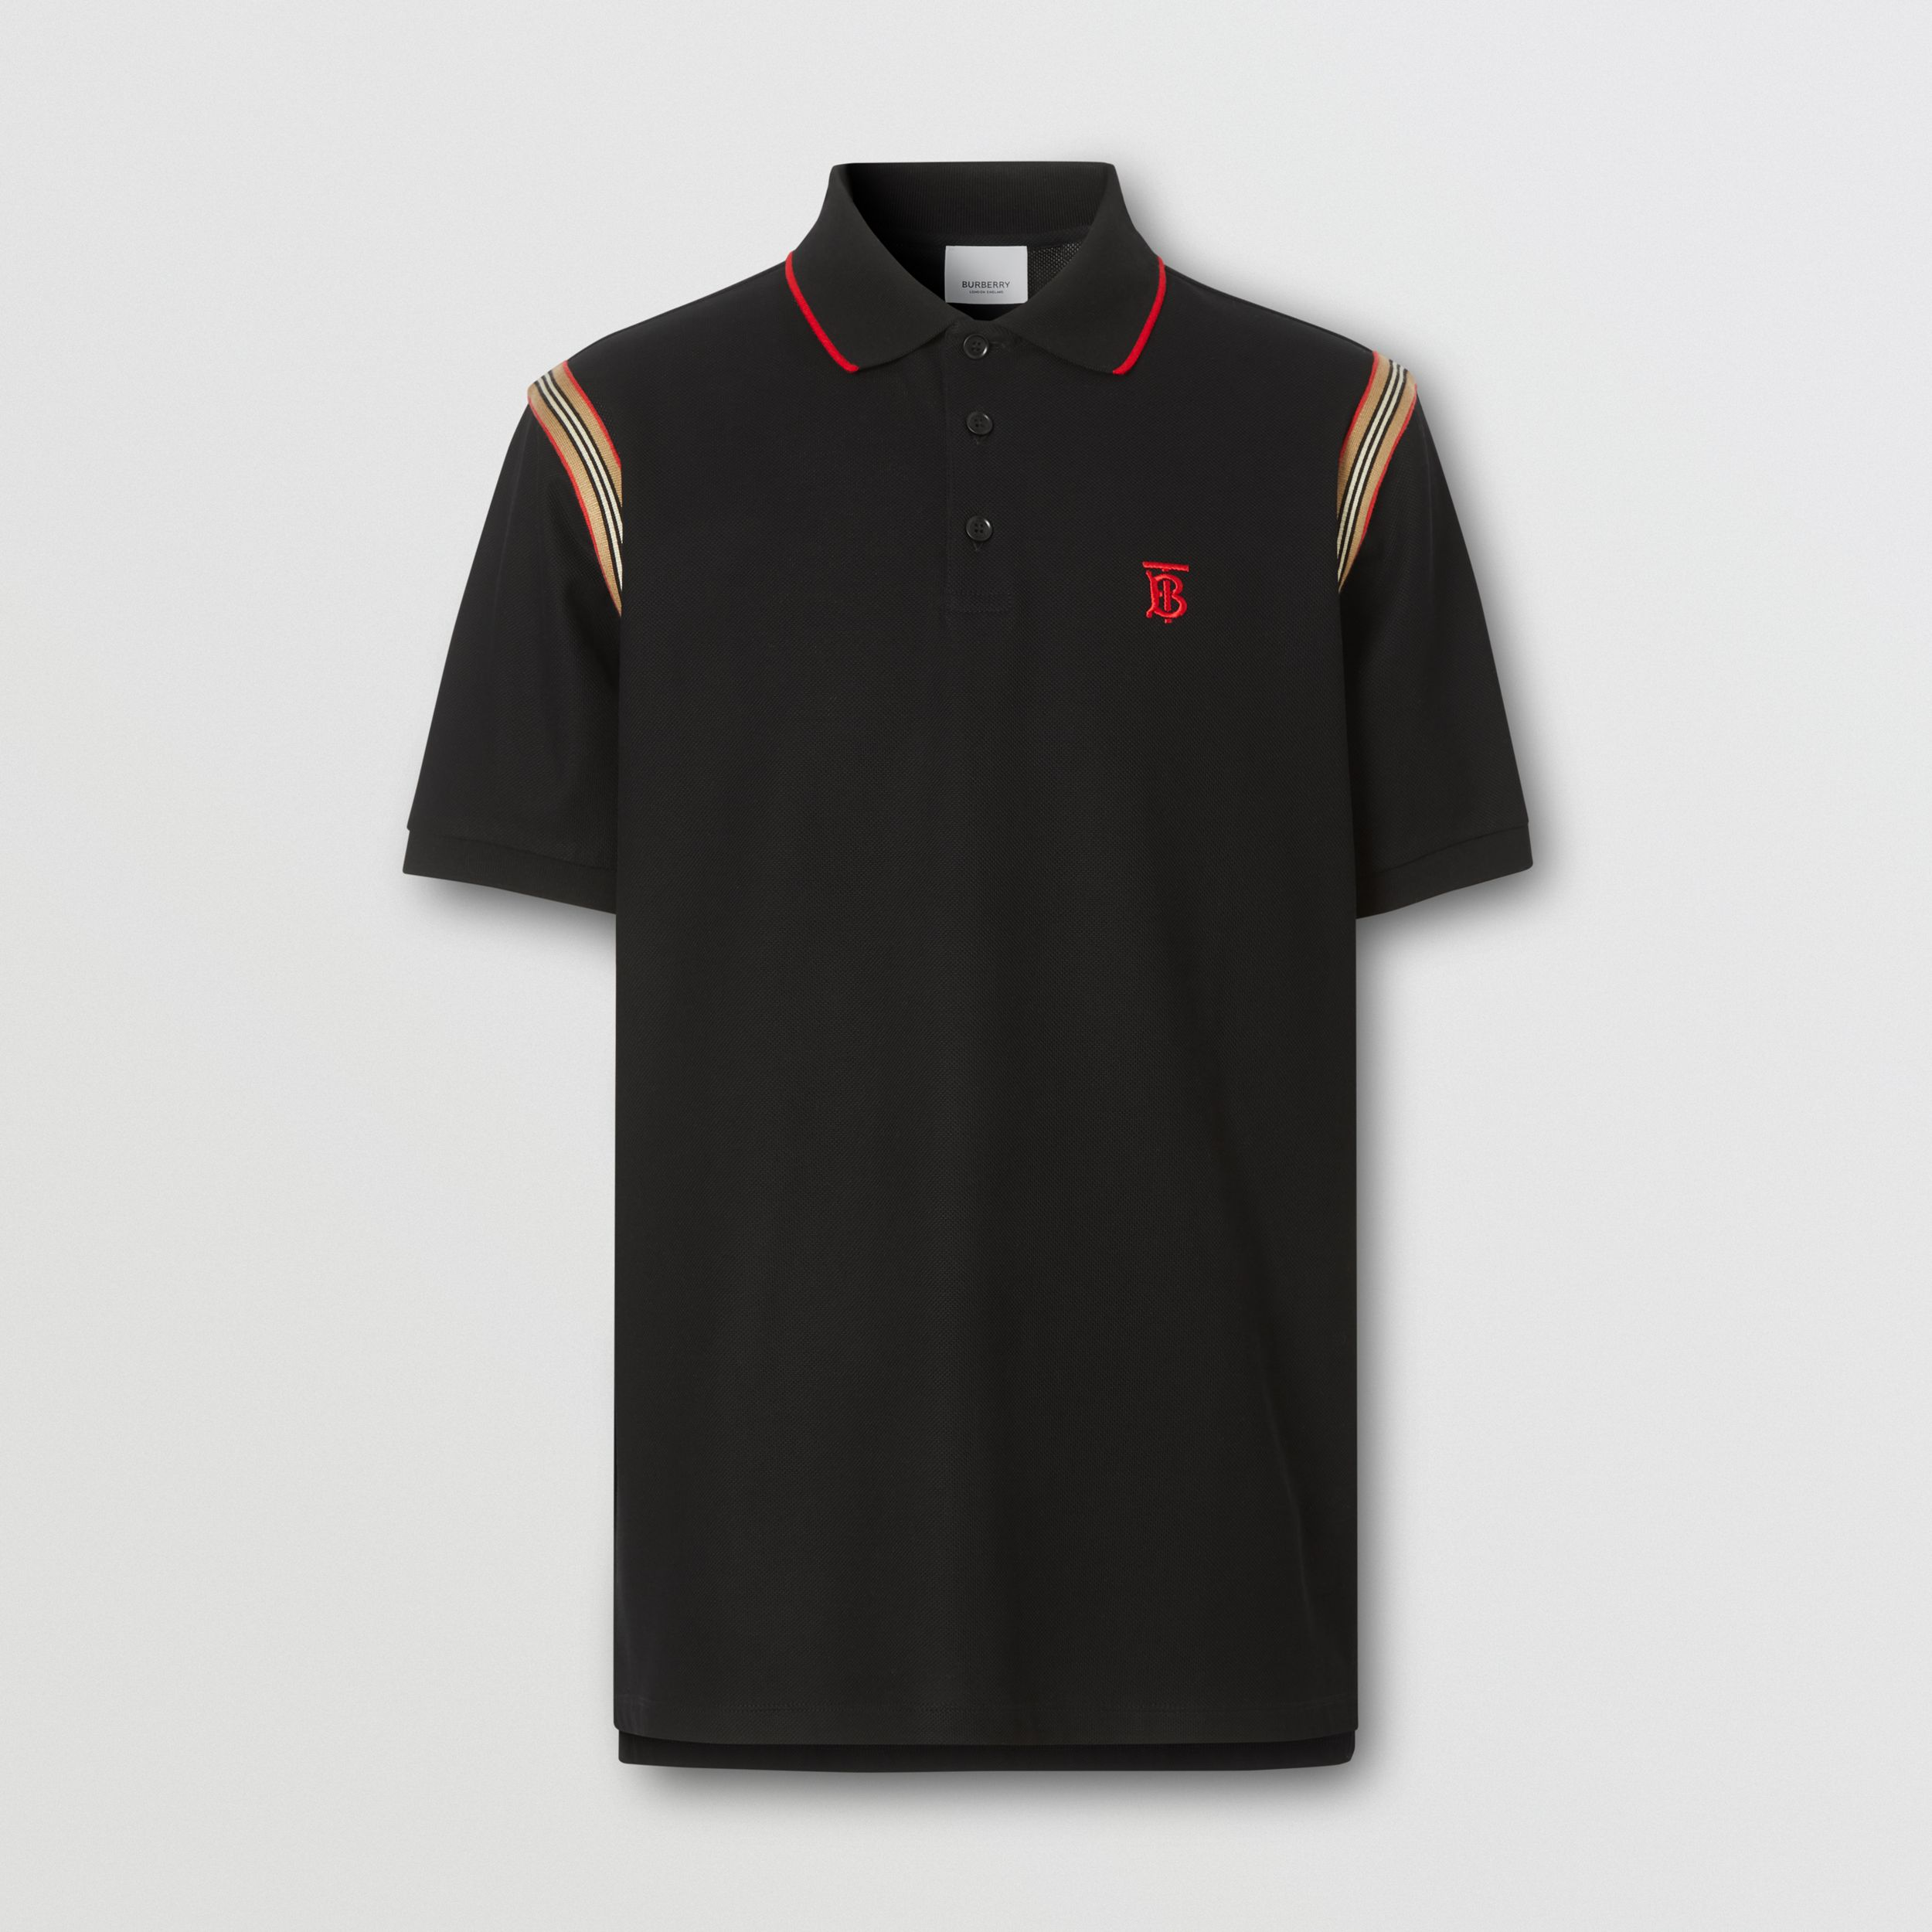 Icon Stripe Trim Monogram Motif Cotton Polo Shirt in Black - Men | Burberry - 4